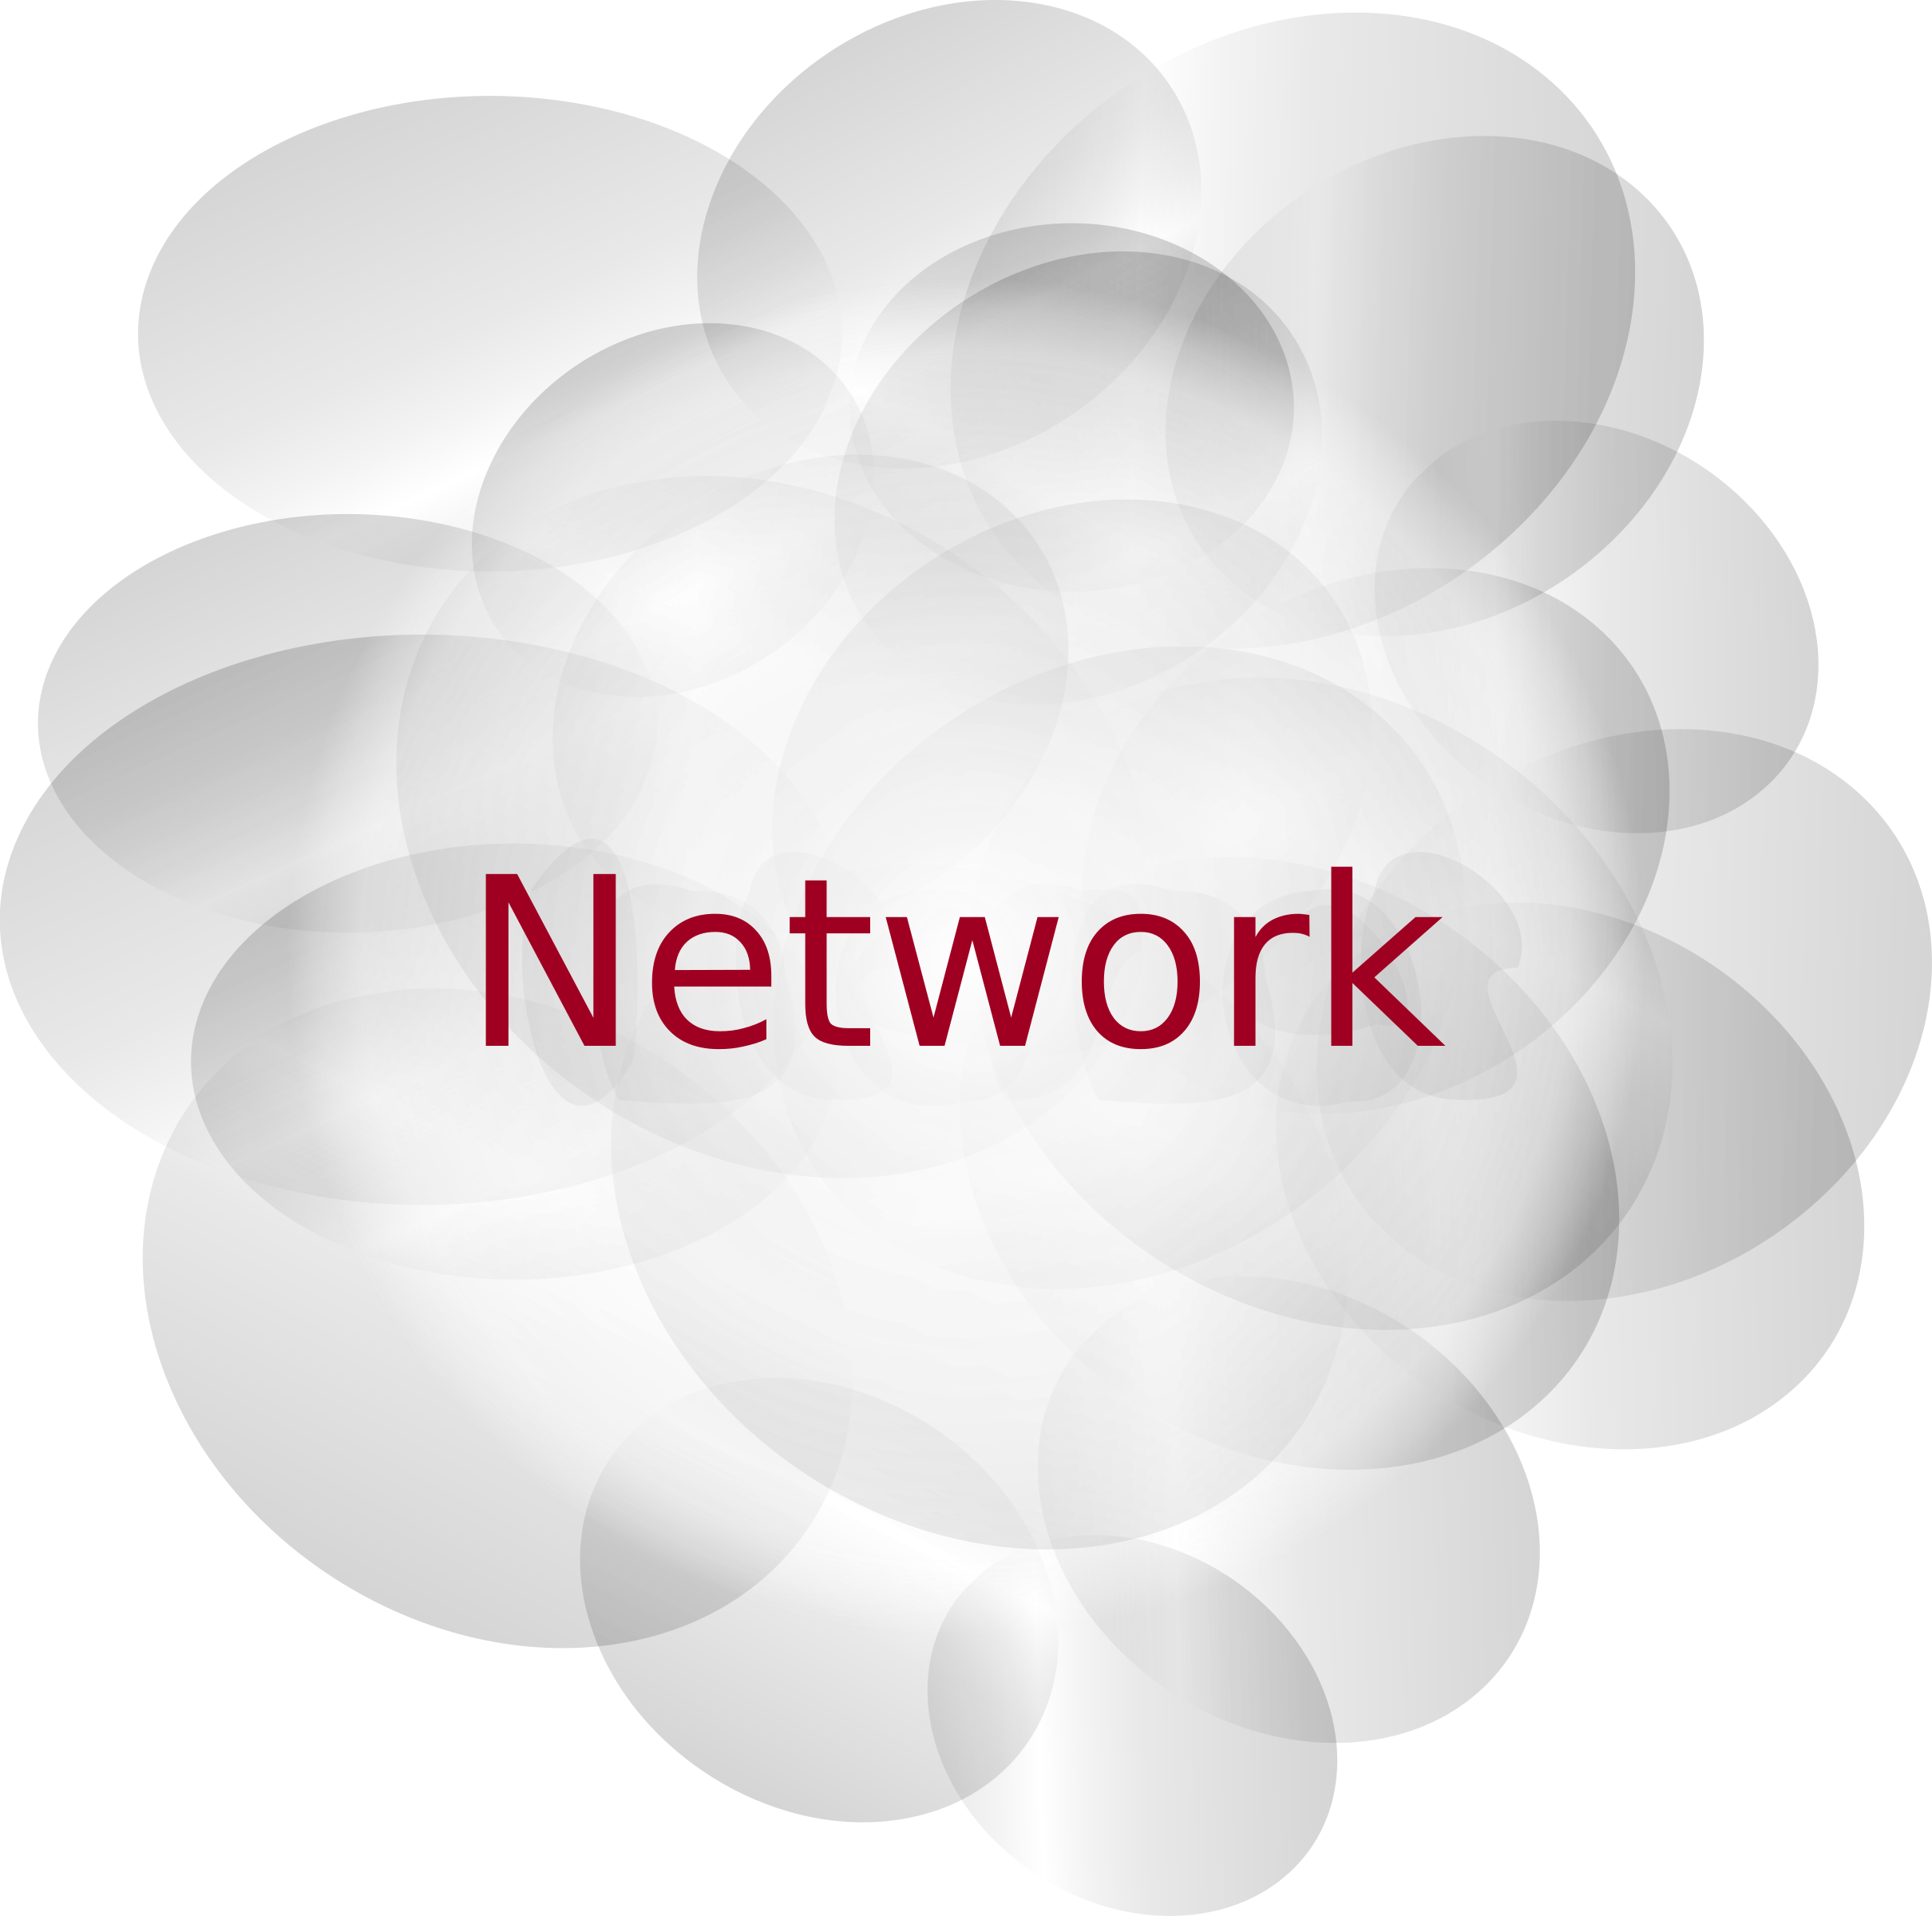 Cloud clipart computer.  collection of network